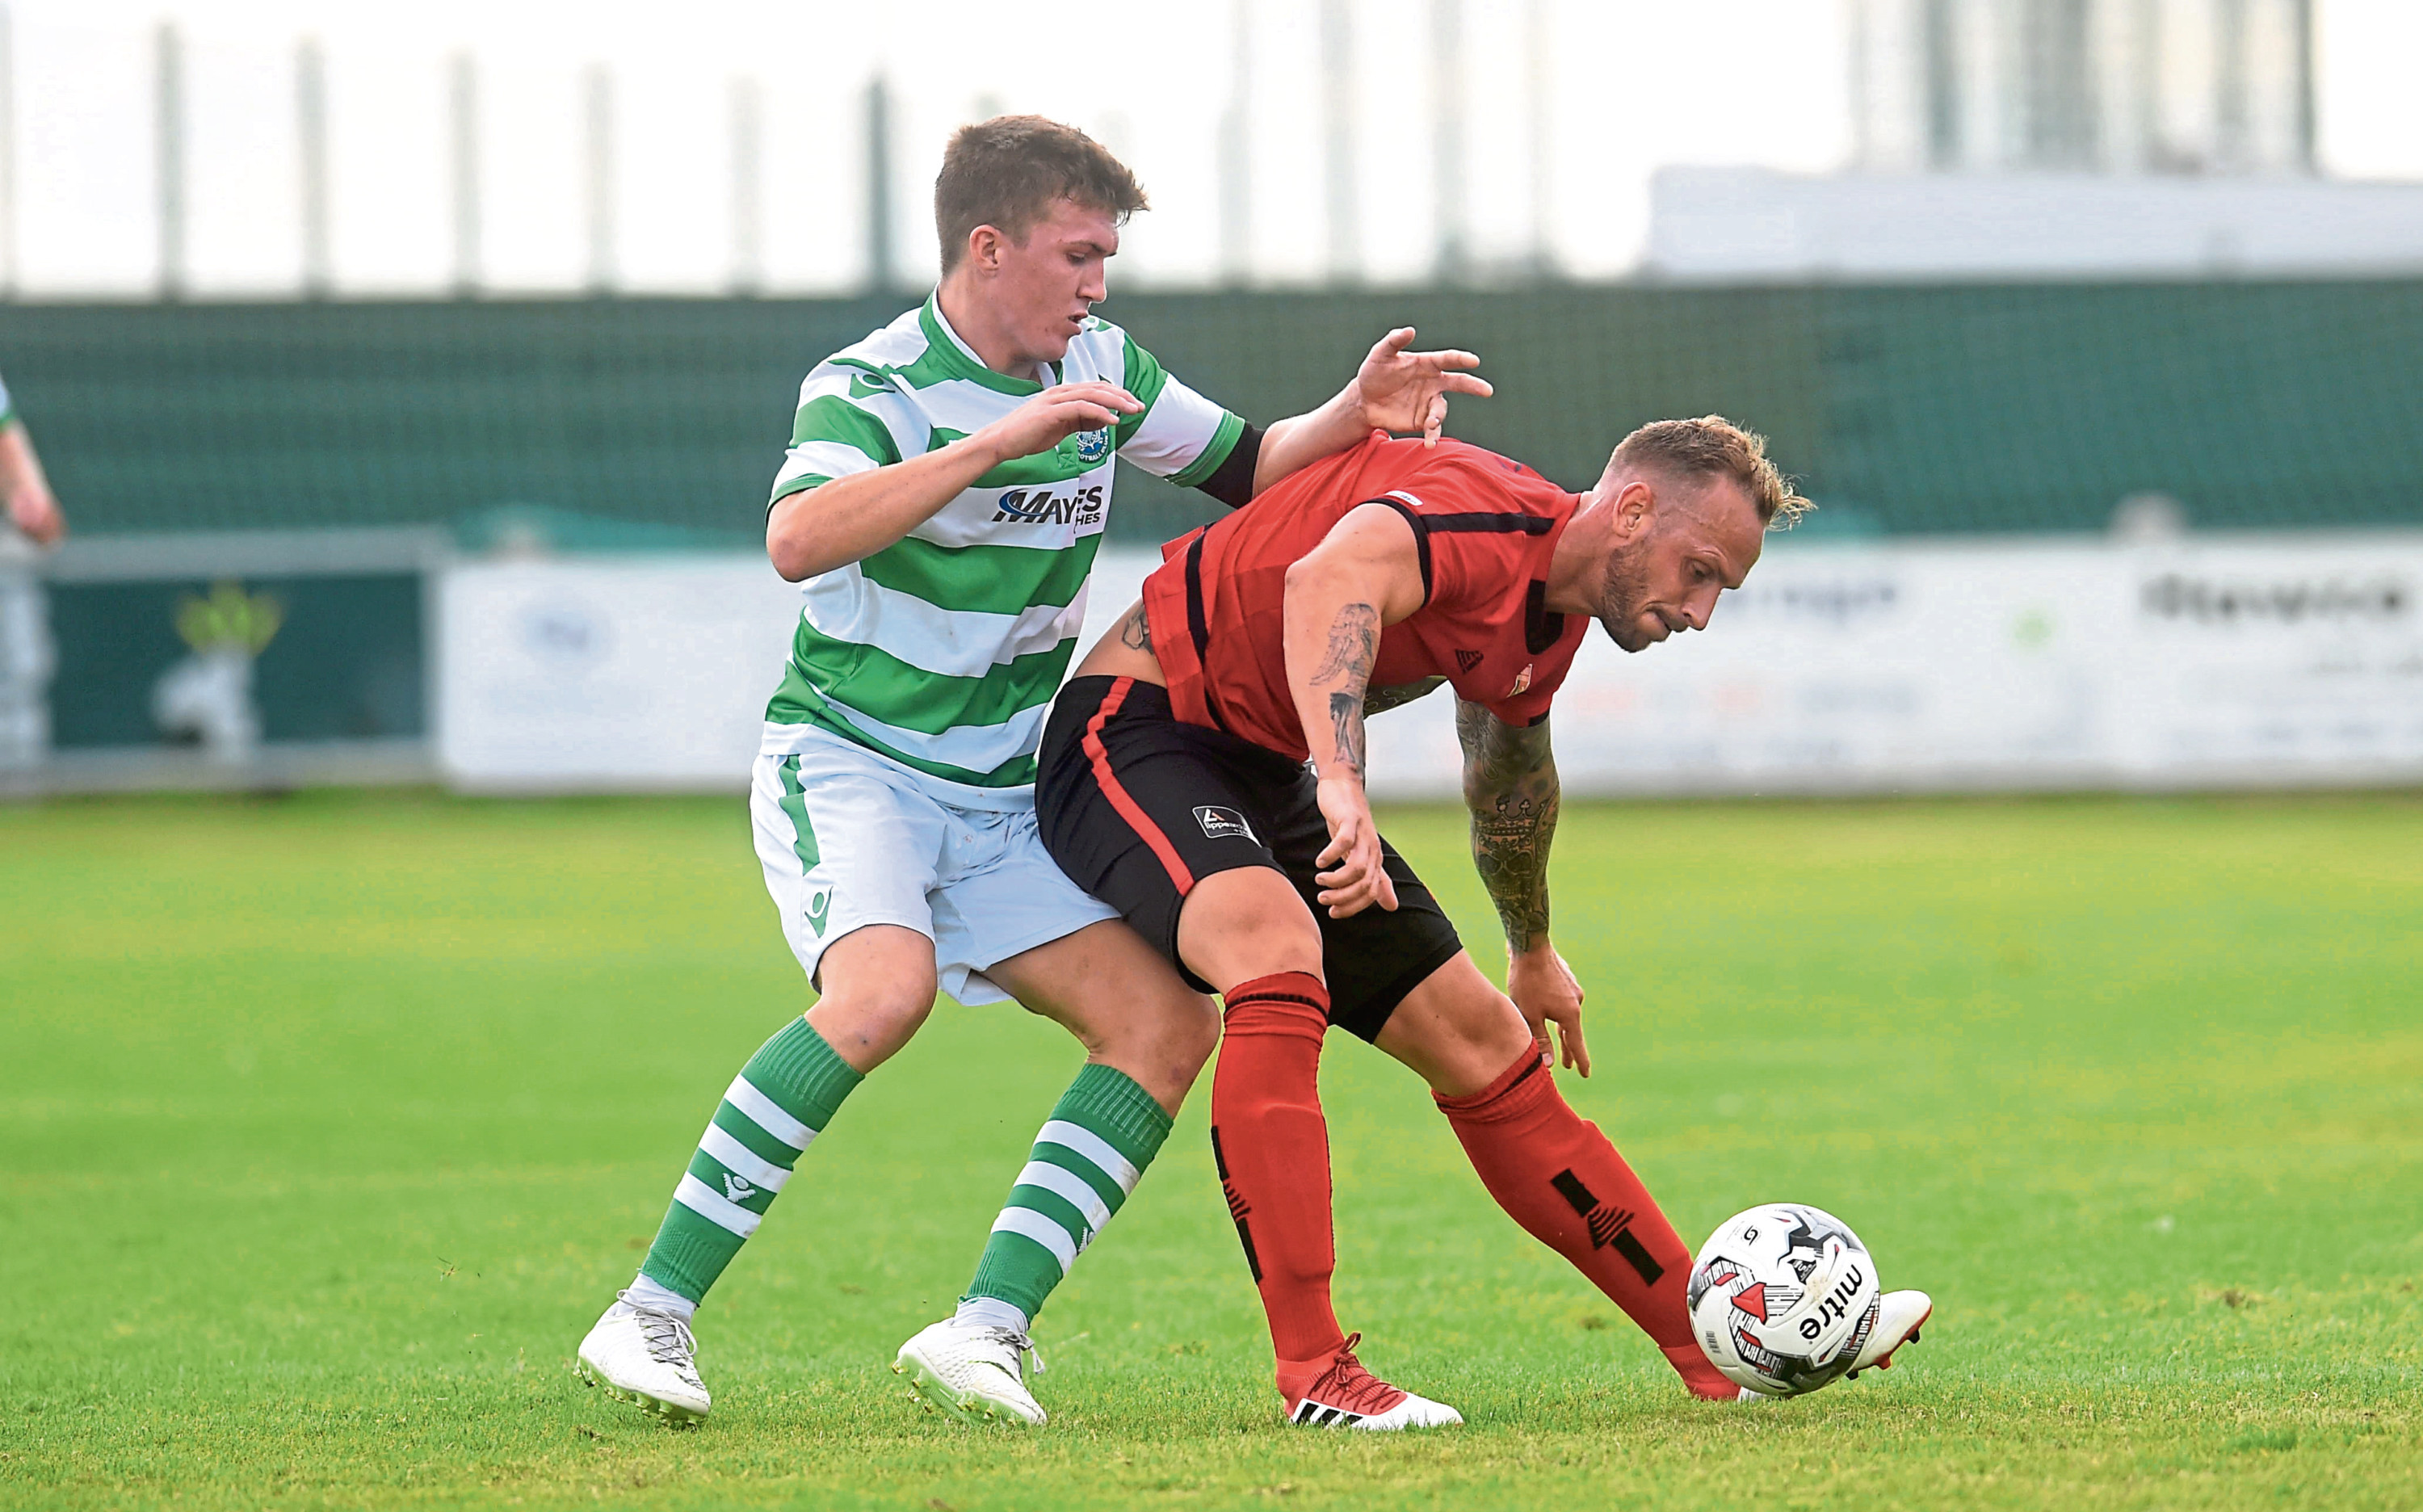 Locos Jonny Smith, right, in action in an earlier match.